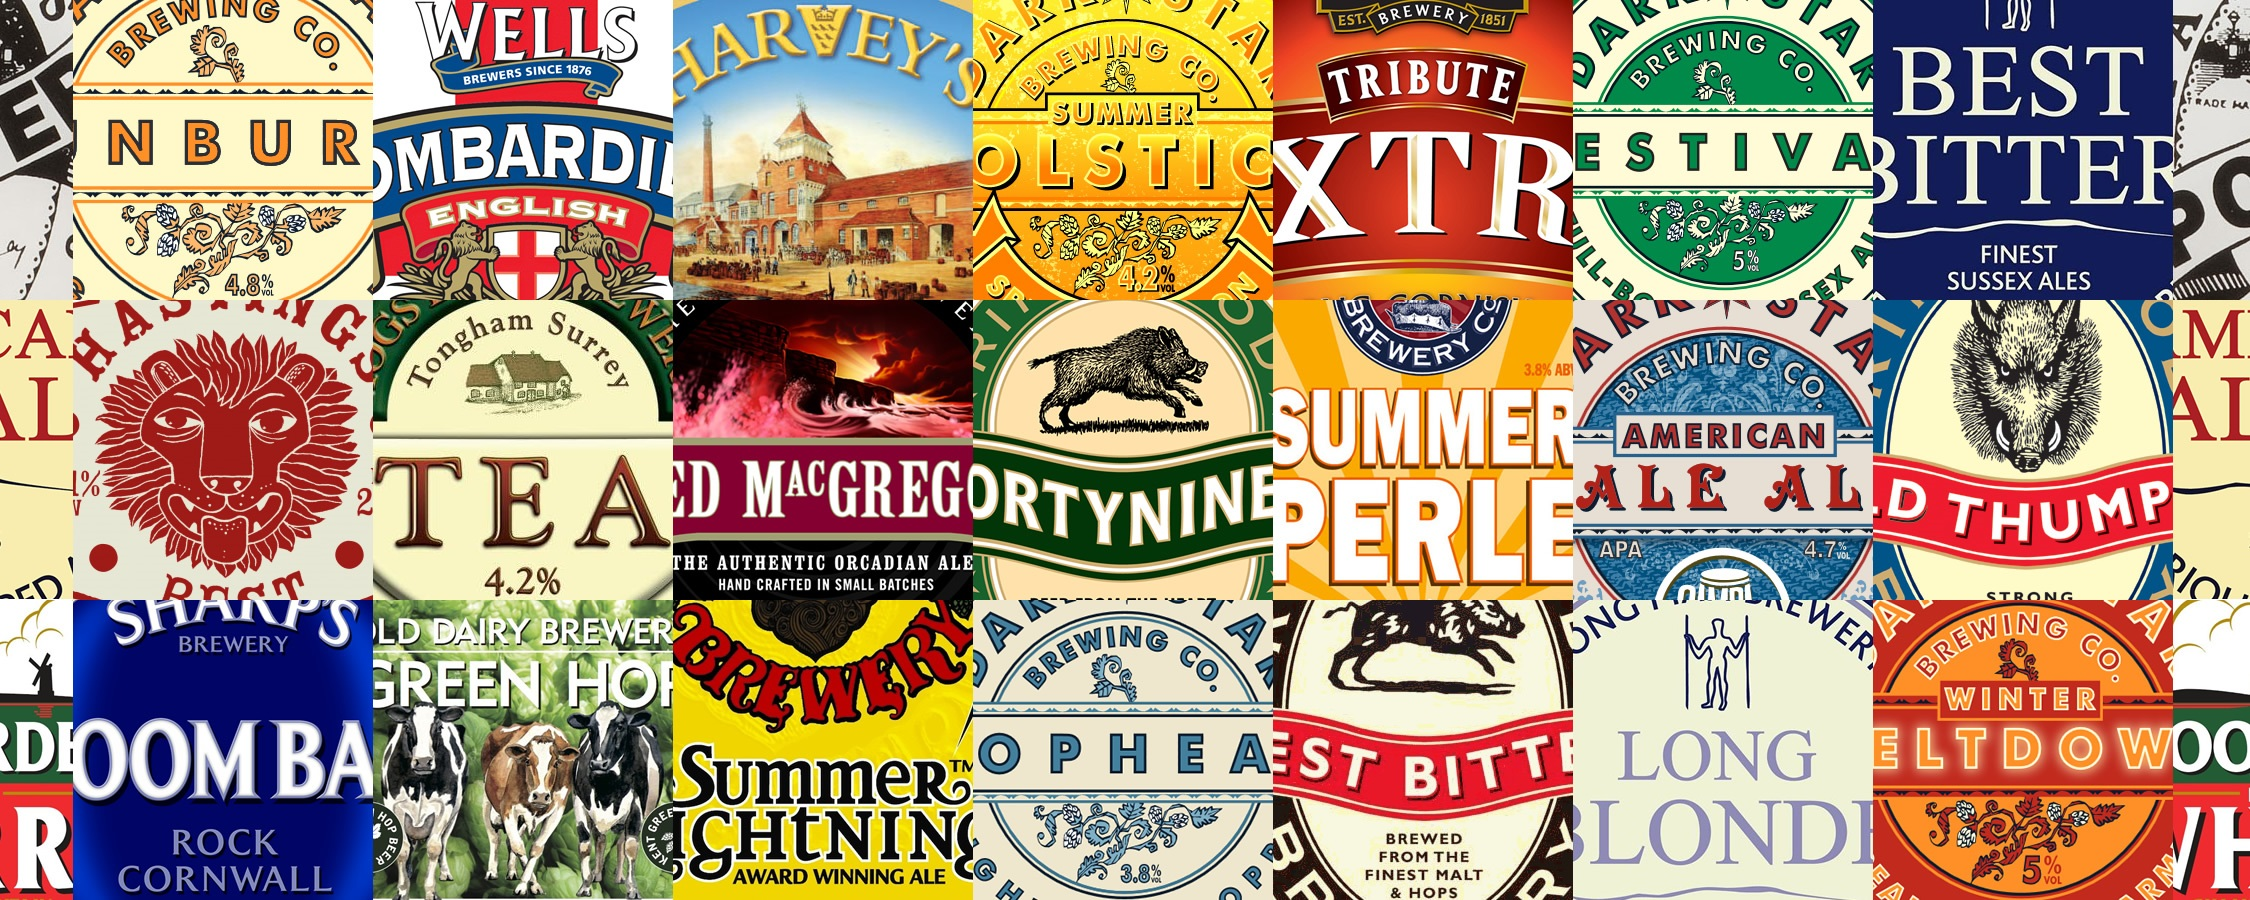 Guest Ales - We regularly have guest ales throughout the year